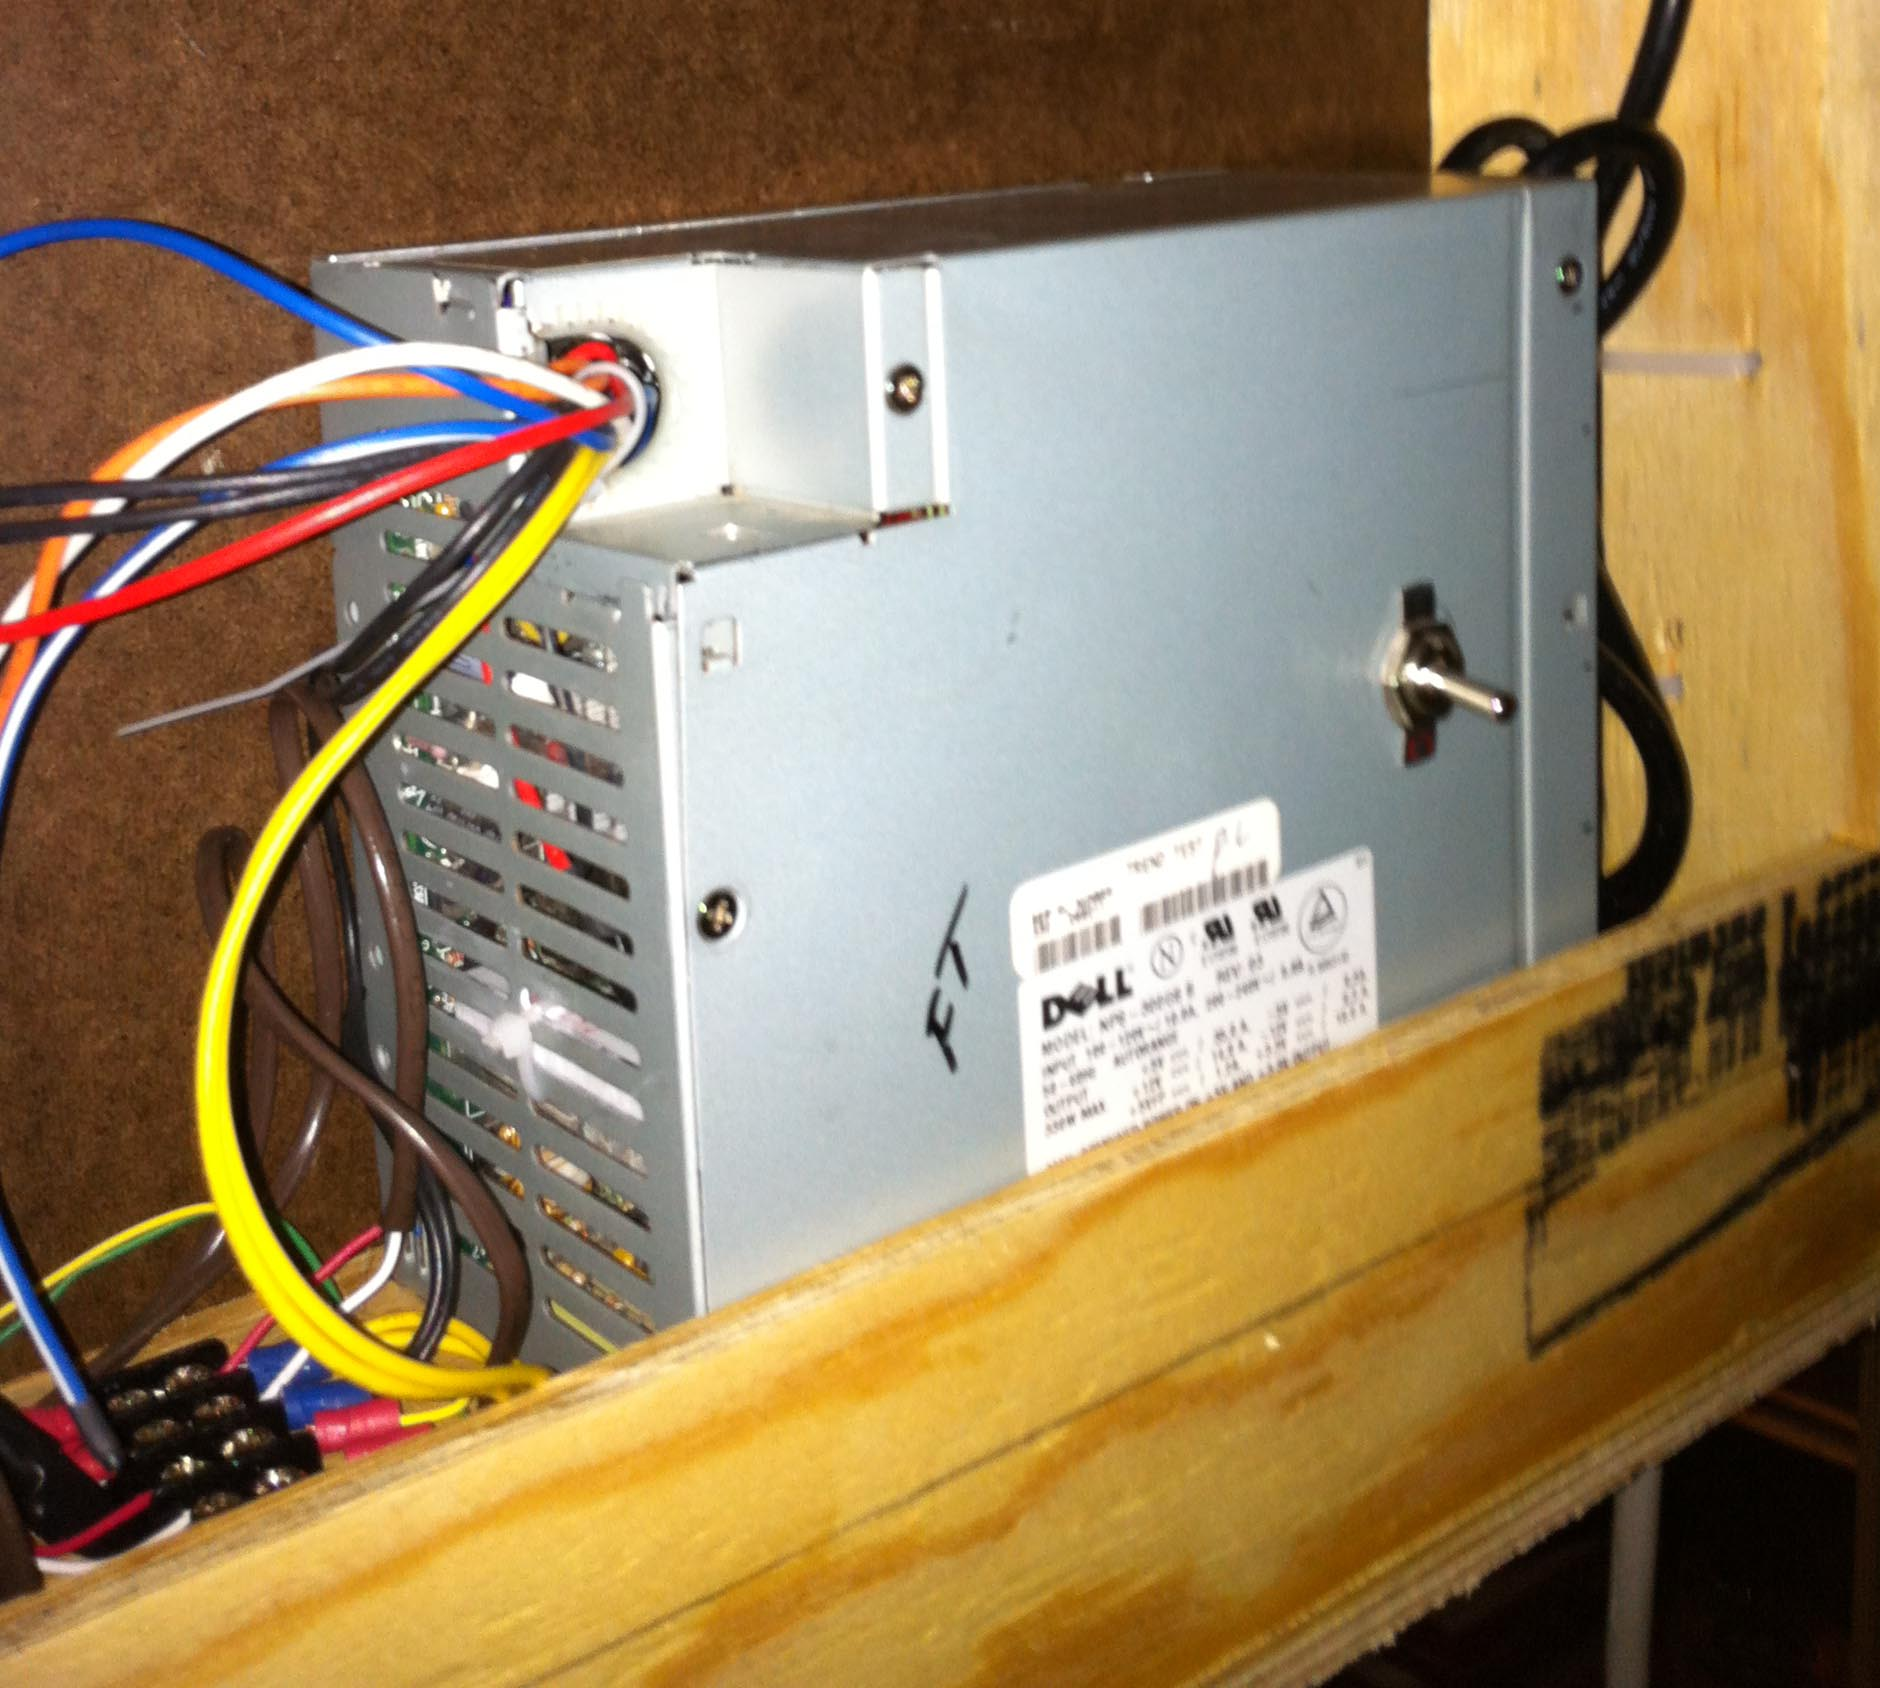 Power supply installed in the back of the layout